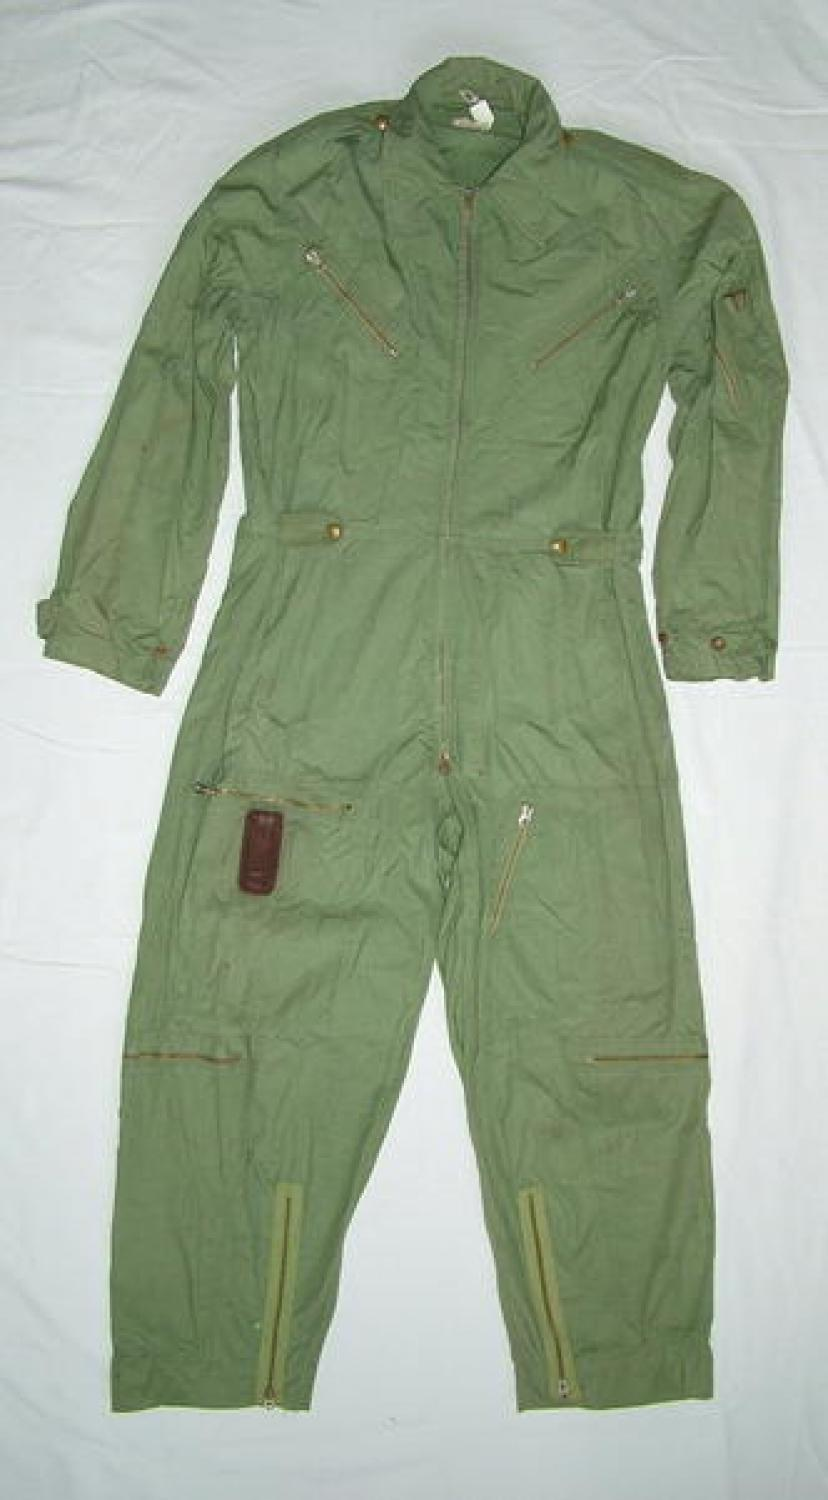 R.A.A.F. Flying Suit